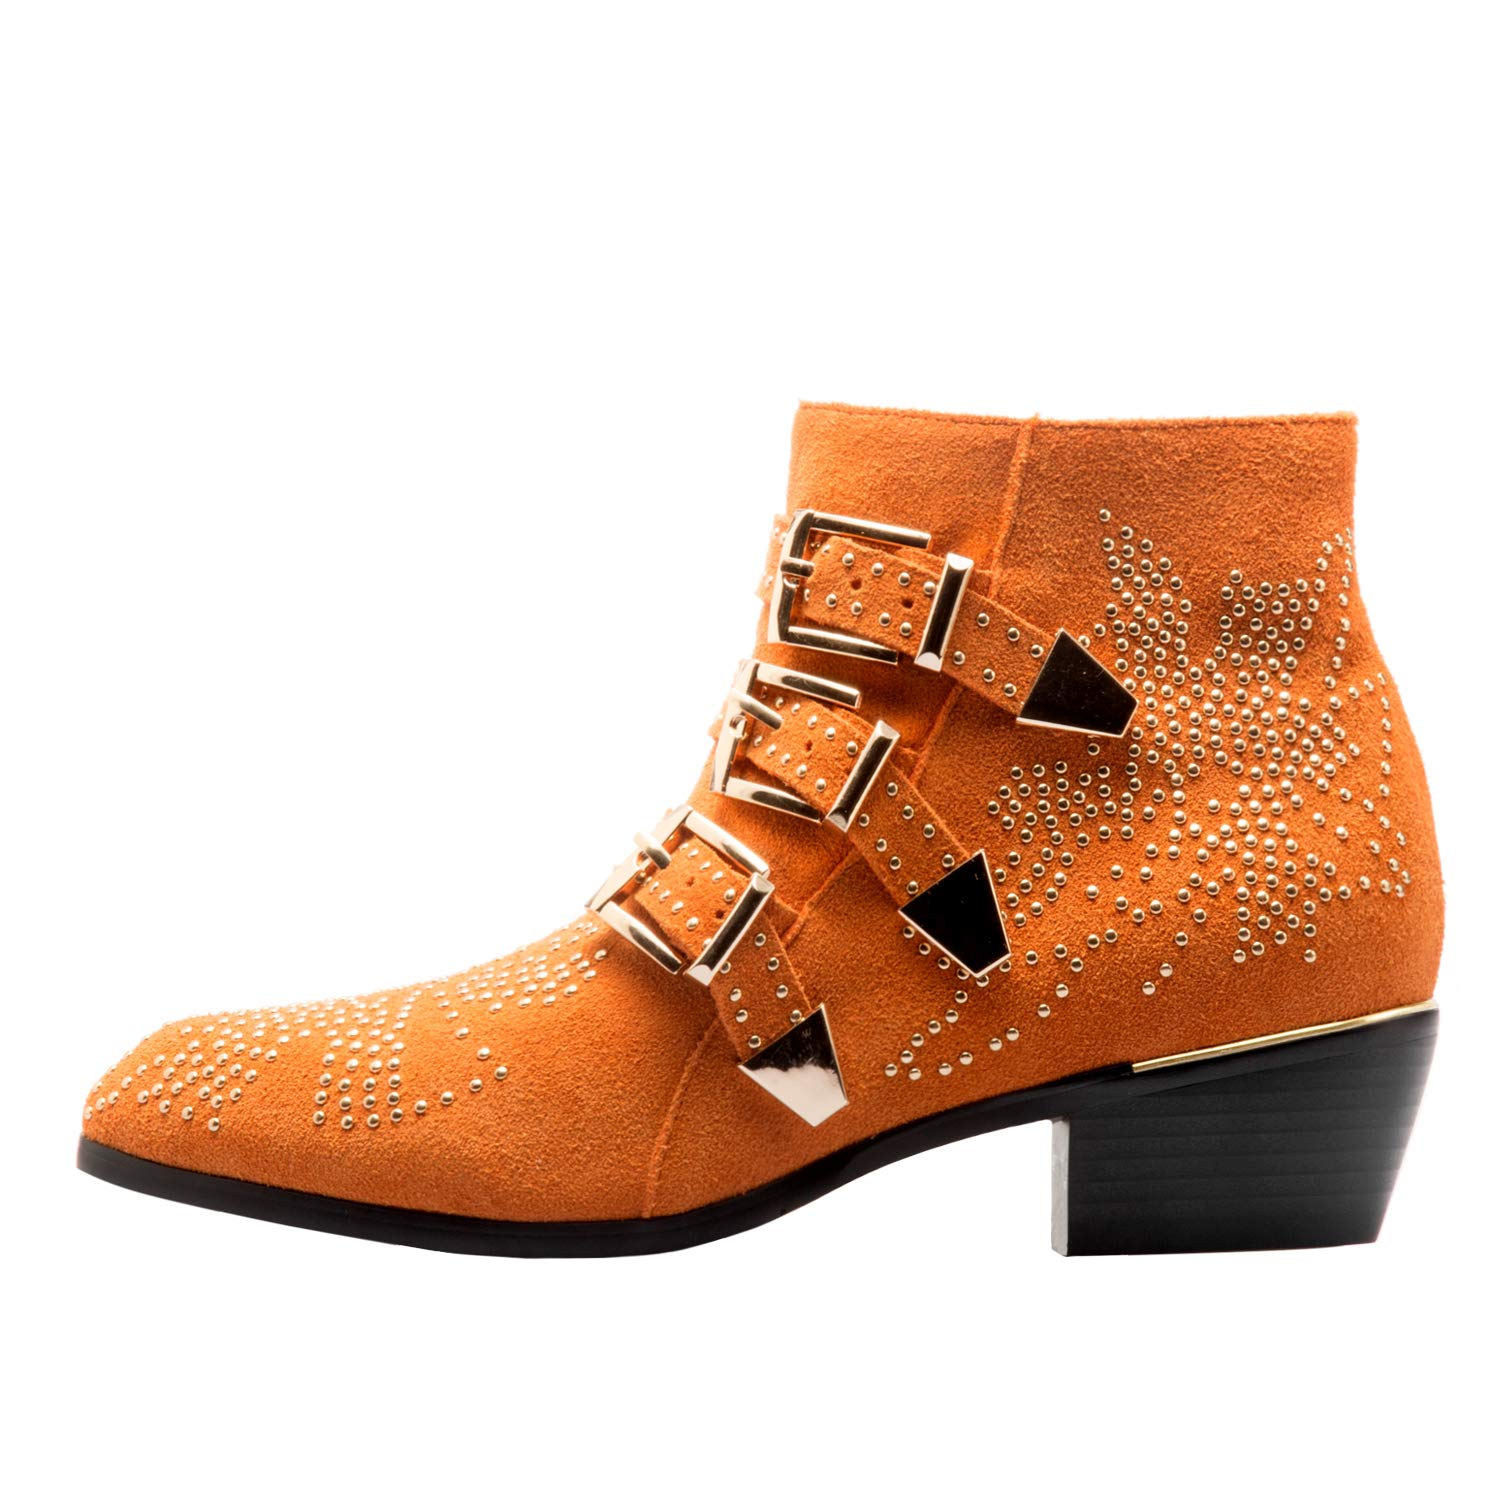 Yellow-suede Comfity Boots for Women,Women's Leather Boot Rivets Studded shoes Metal Buckle Low Heels Ankle Boots